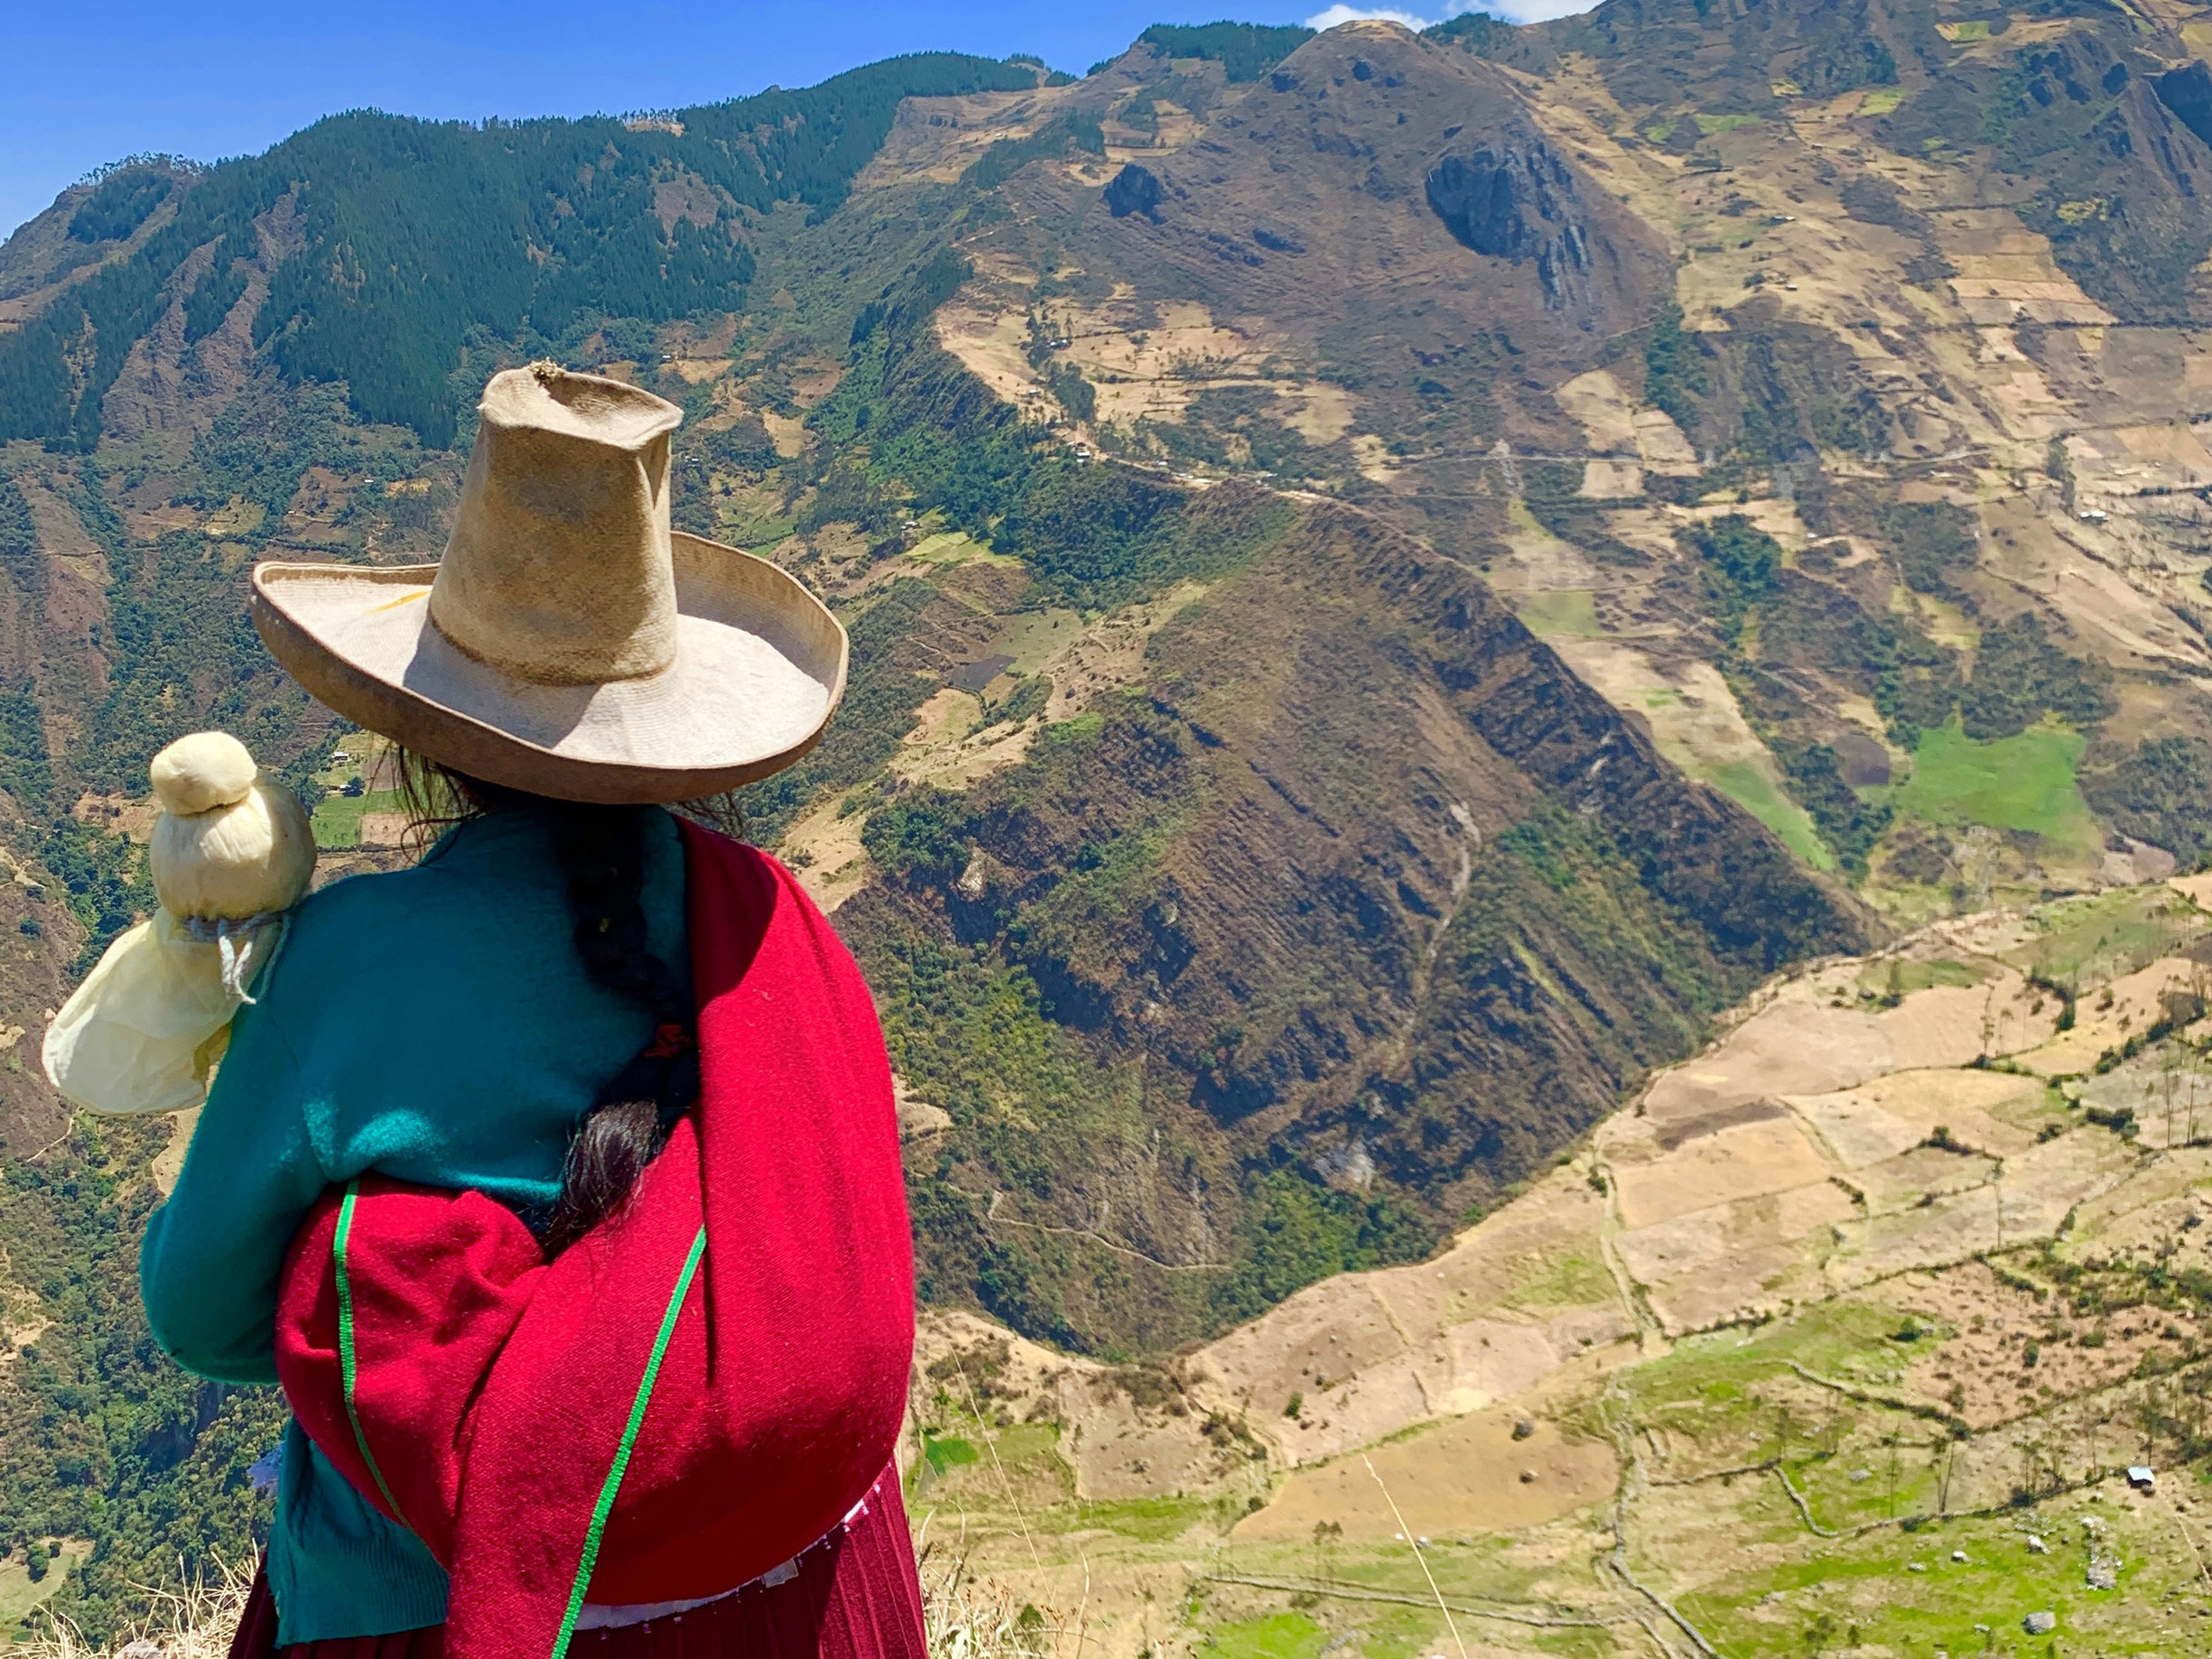 Organic smallholder farmer looking at mountains in Latin America